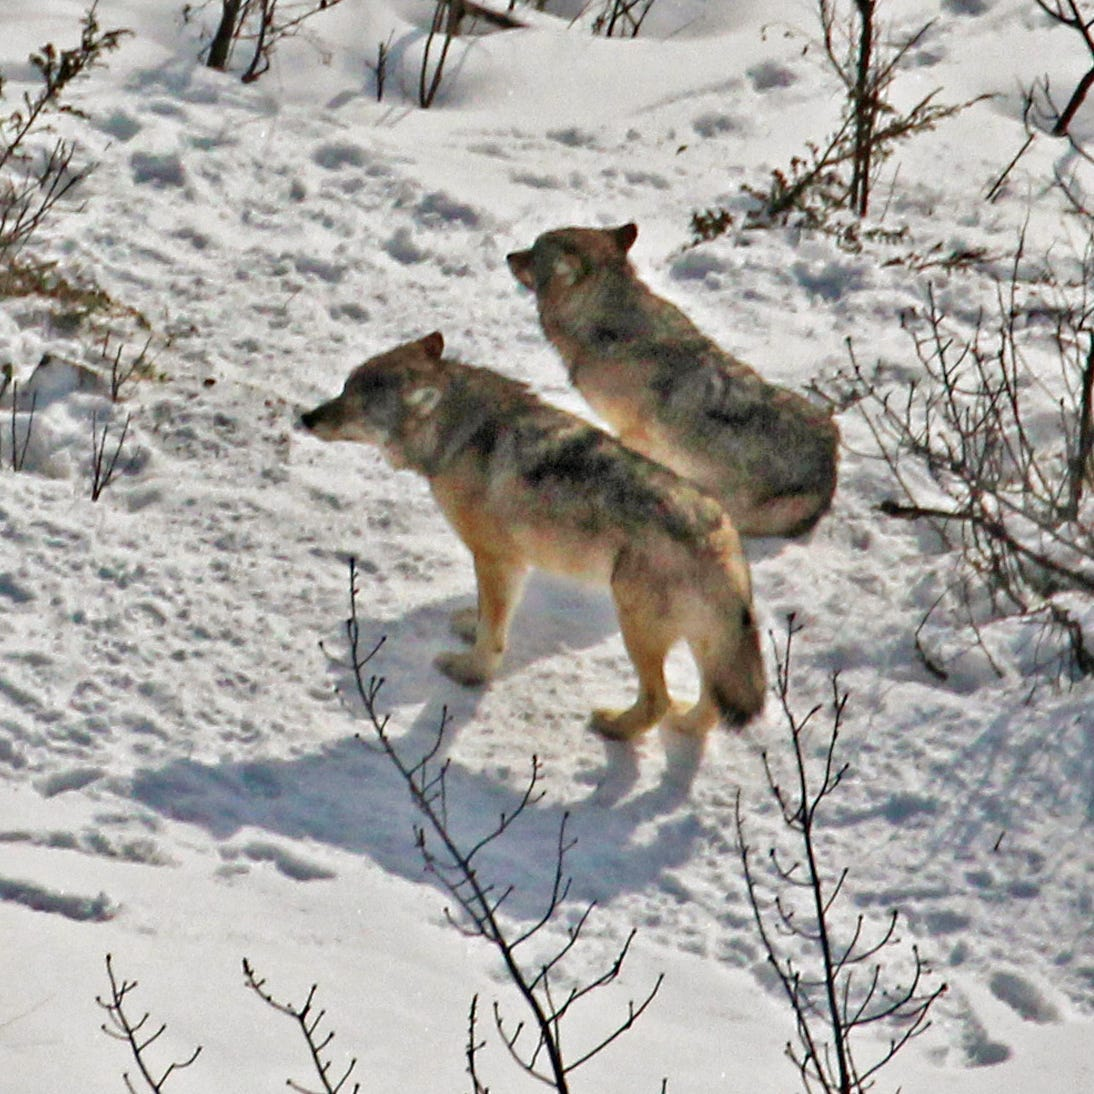 6-8 wolves to be relocated to help bolster Isle Royale pack